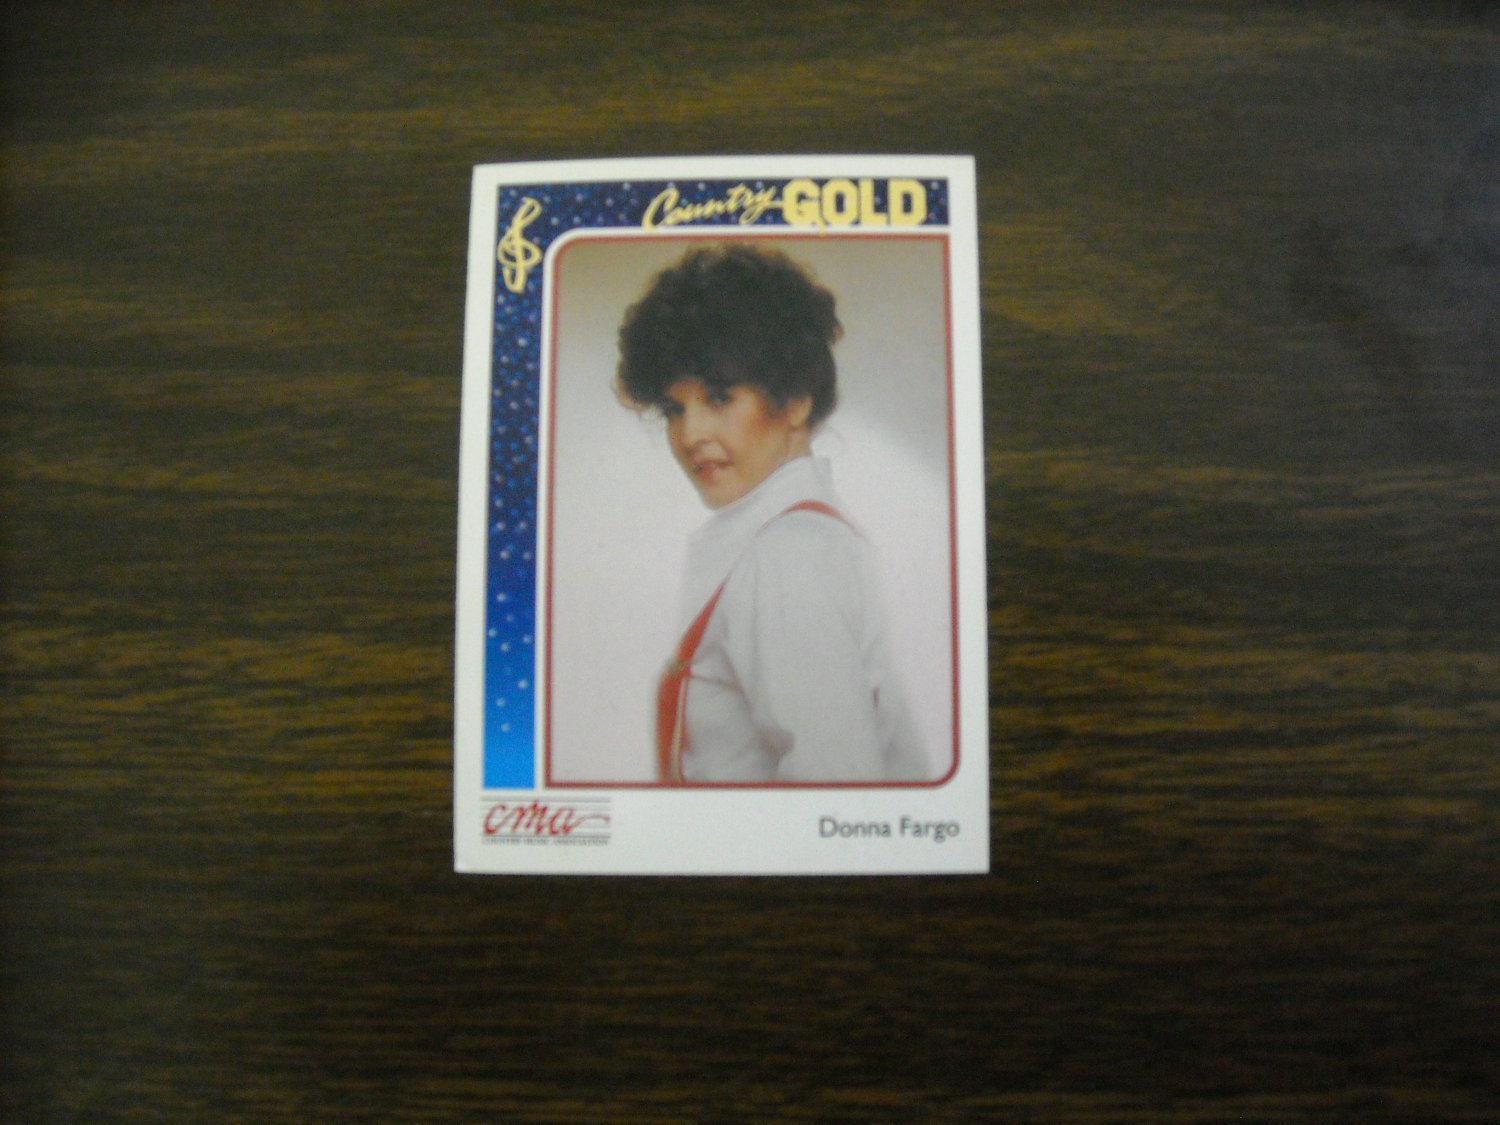 Donna Fargo Country Gold Card No. 59 - CMA Country Music Association 1992 Sterling Cards